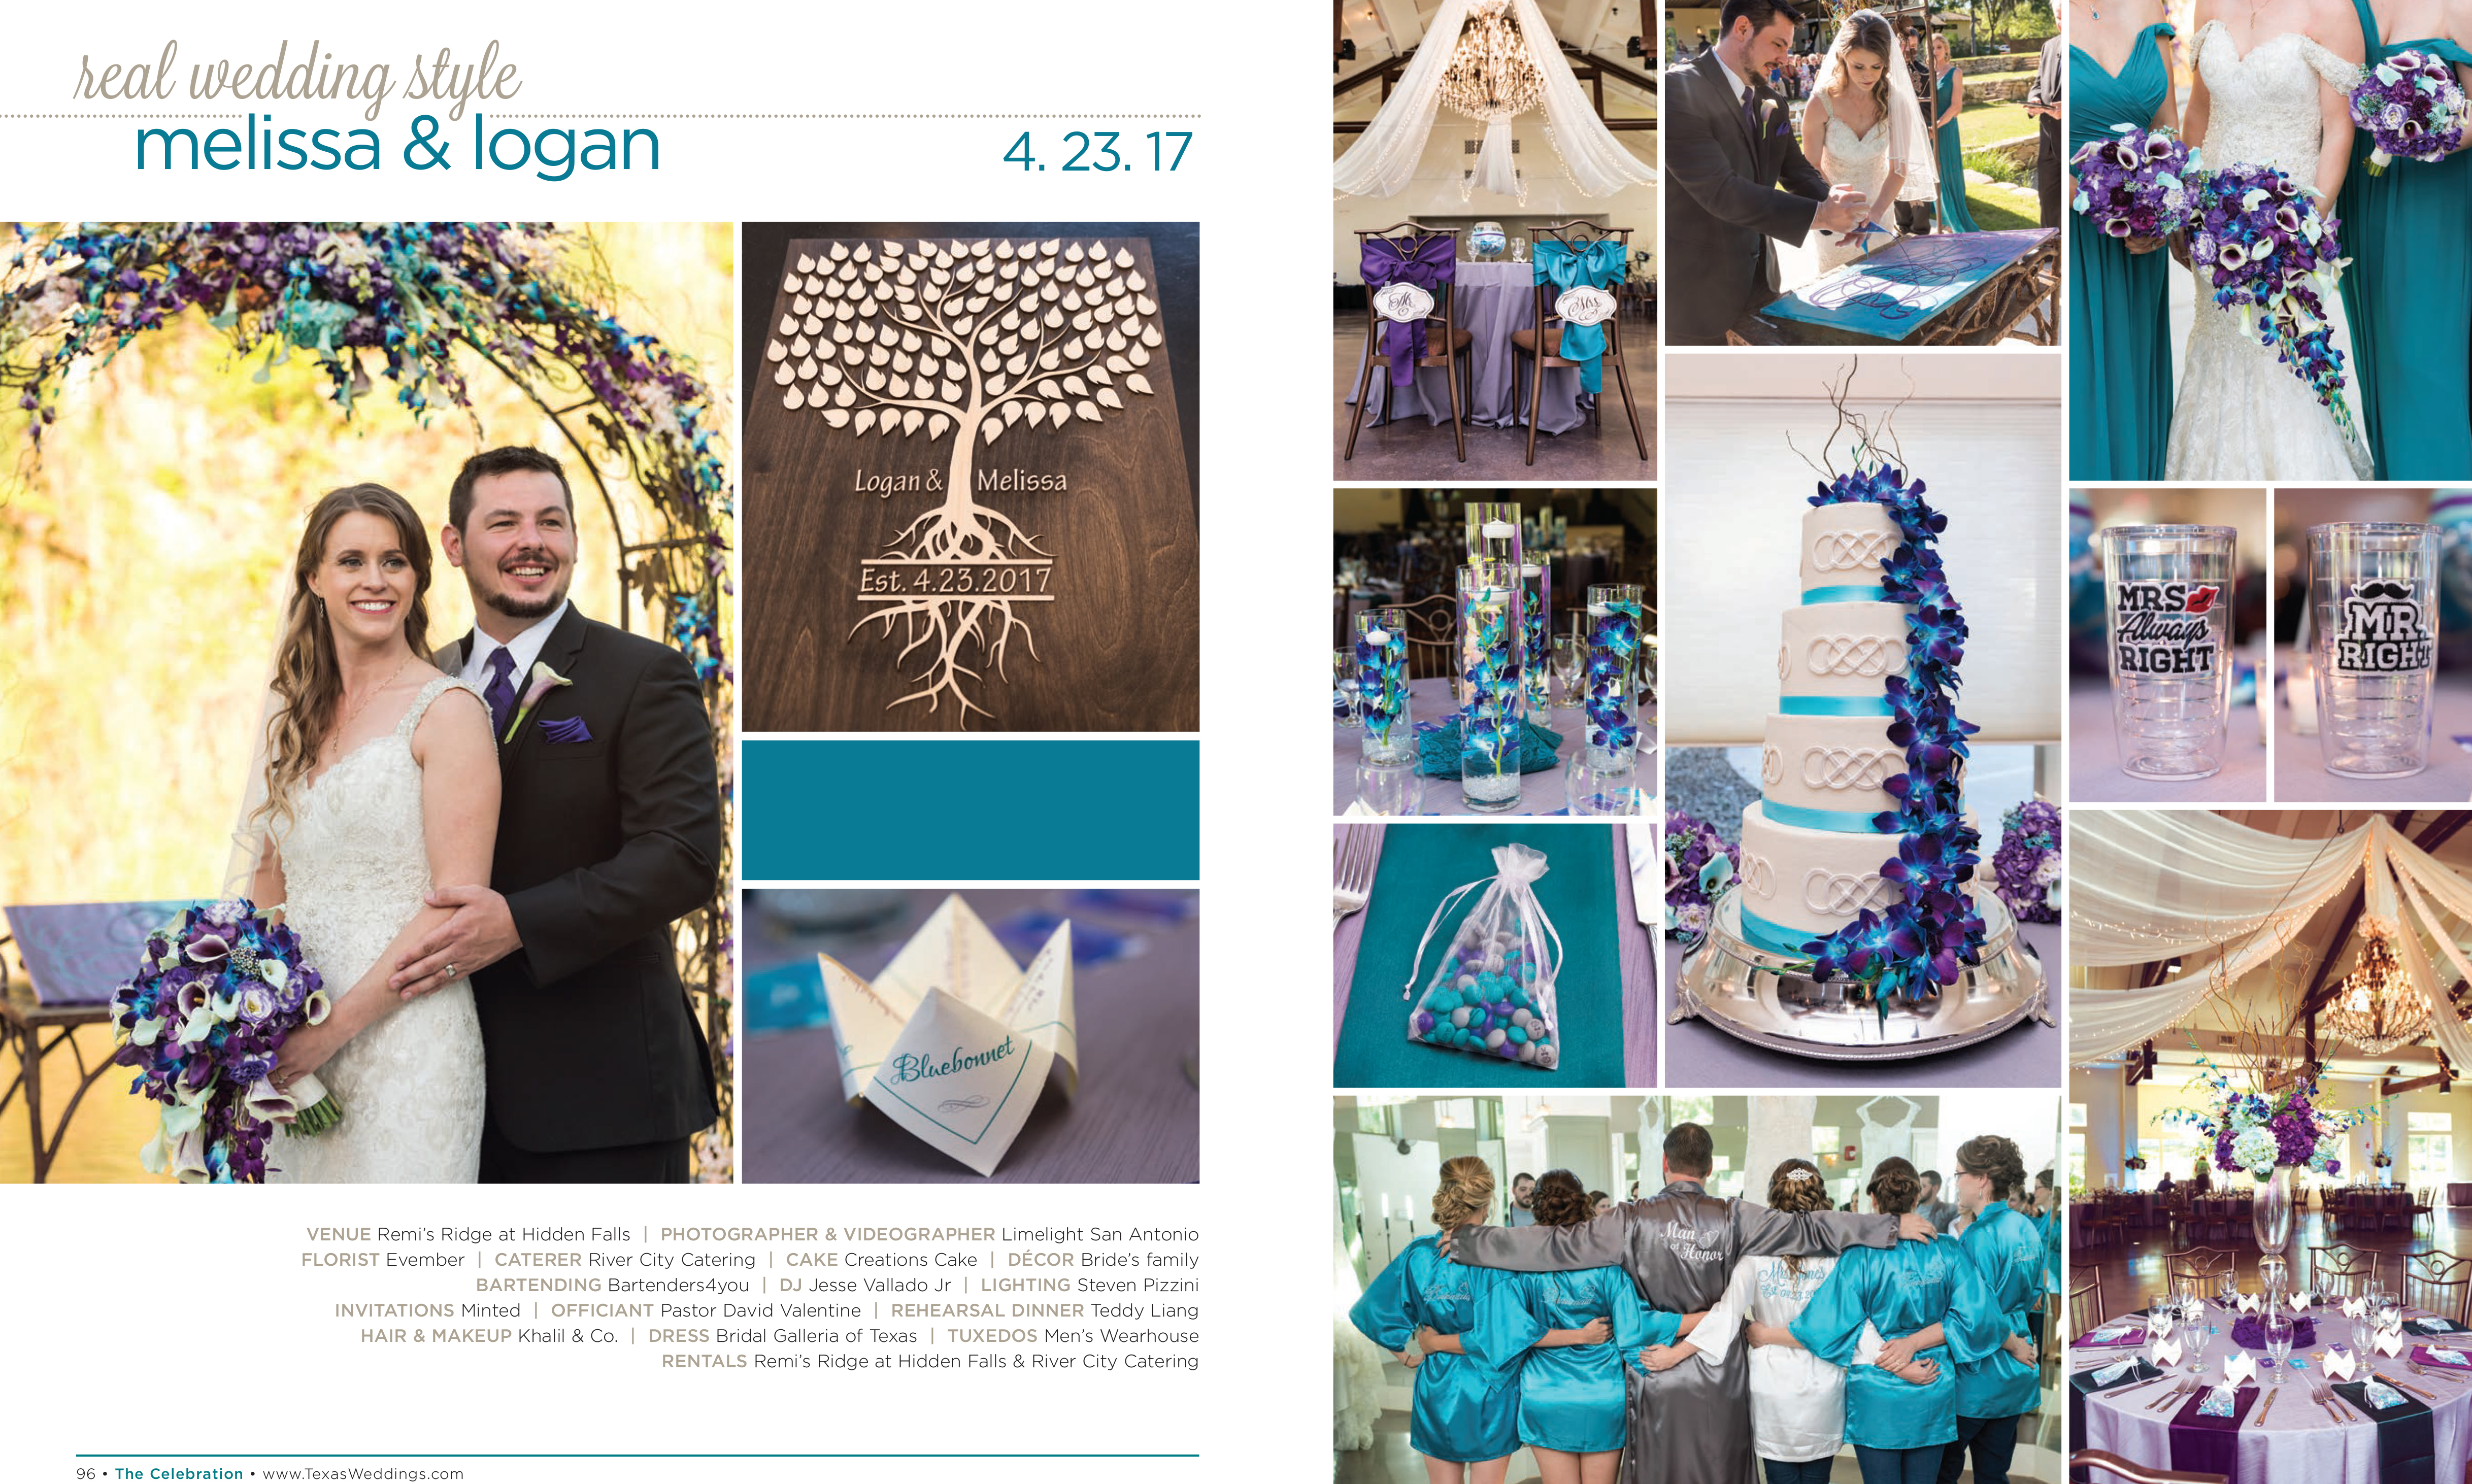 Melissa & Logan in their Real Wedding Page in the Fall/Winter 2017 Texas Wedding Guide